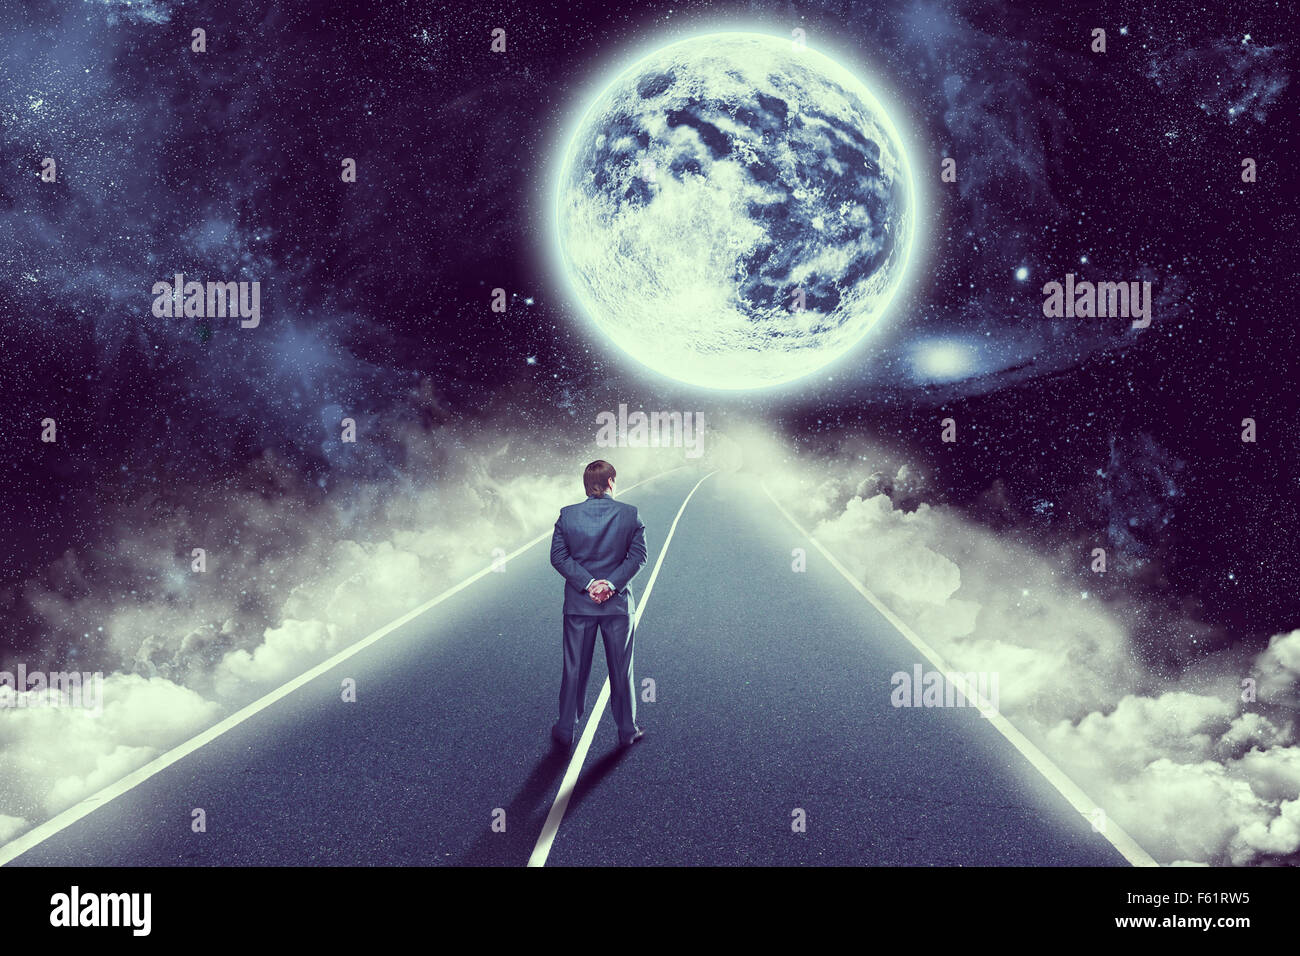 Businessman standing back on the road in space - Stock Image